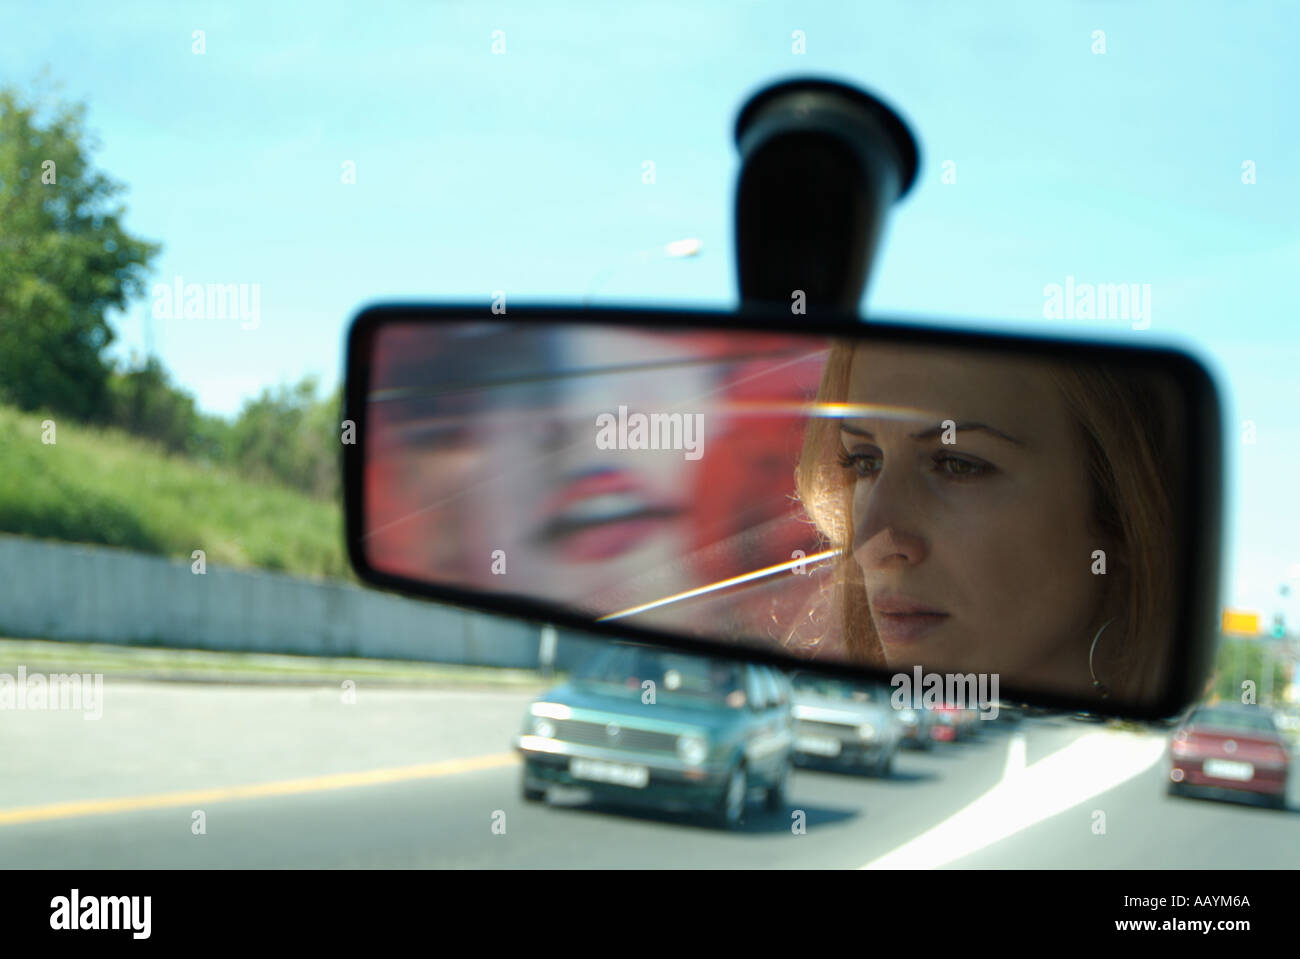 Woman in Rear View Mirror of a Car Driving on a Busy Road - Stock Image